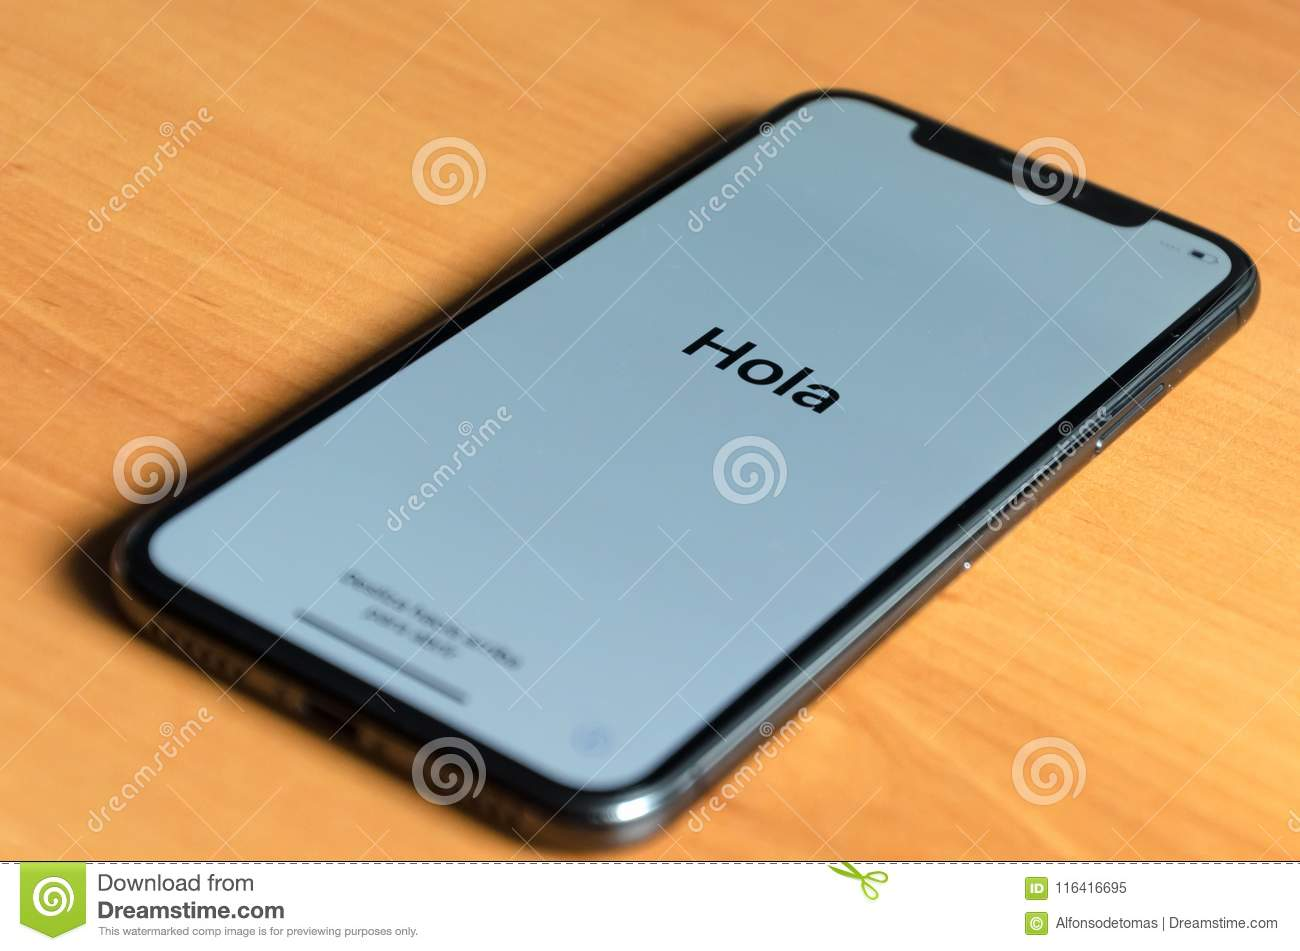 Iphone greeting in spanish with hola editorial image image of download iphone greeting in spanish with hola editorial image image of smart computer m4hsunfo